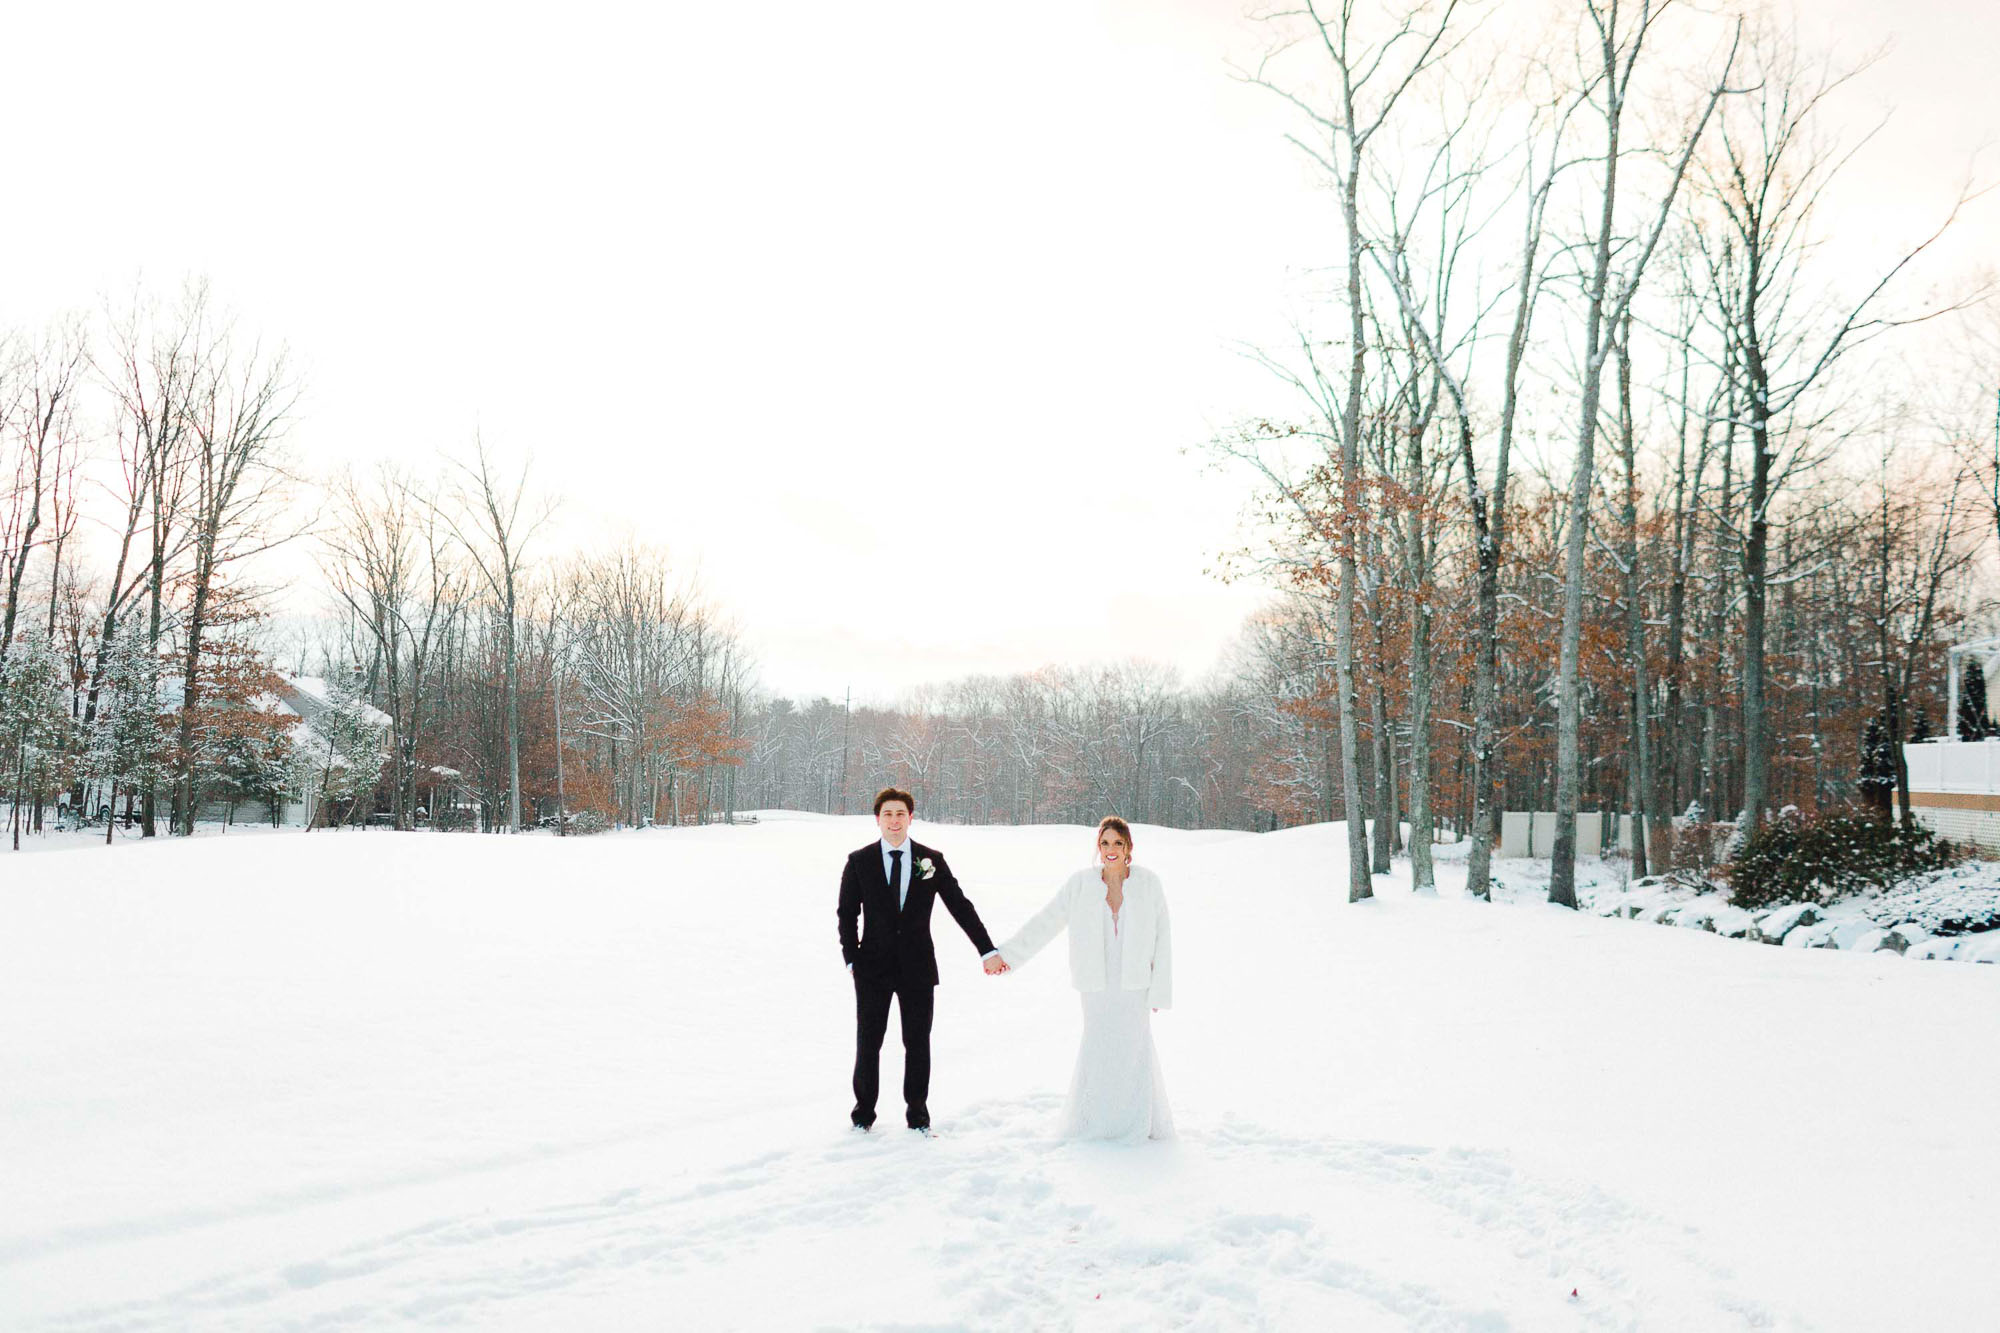 snowy-sand-springs-country-club-drums-pa-christmas-wedding-34933.jpg